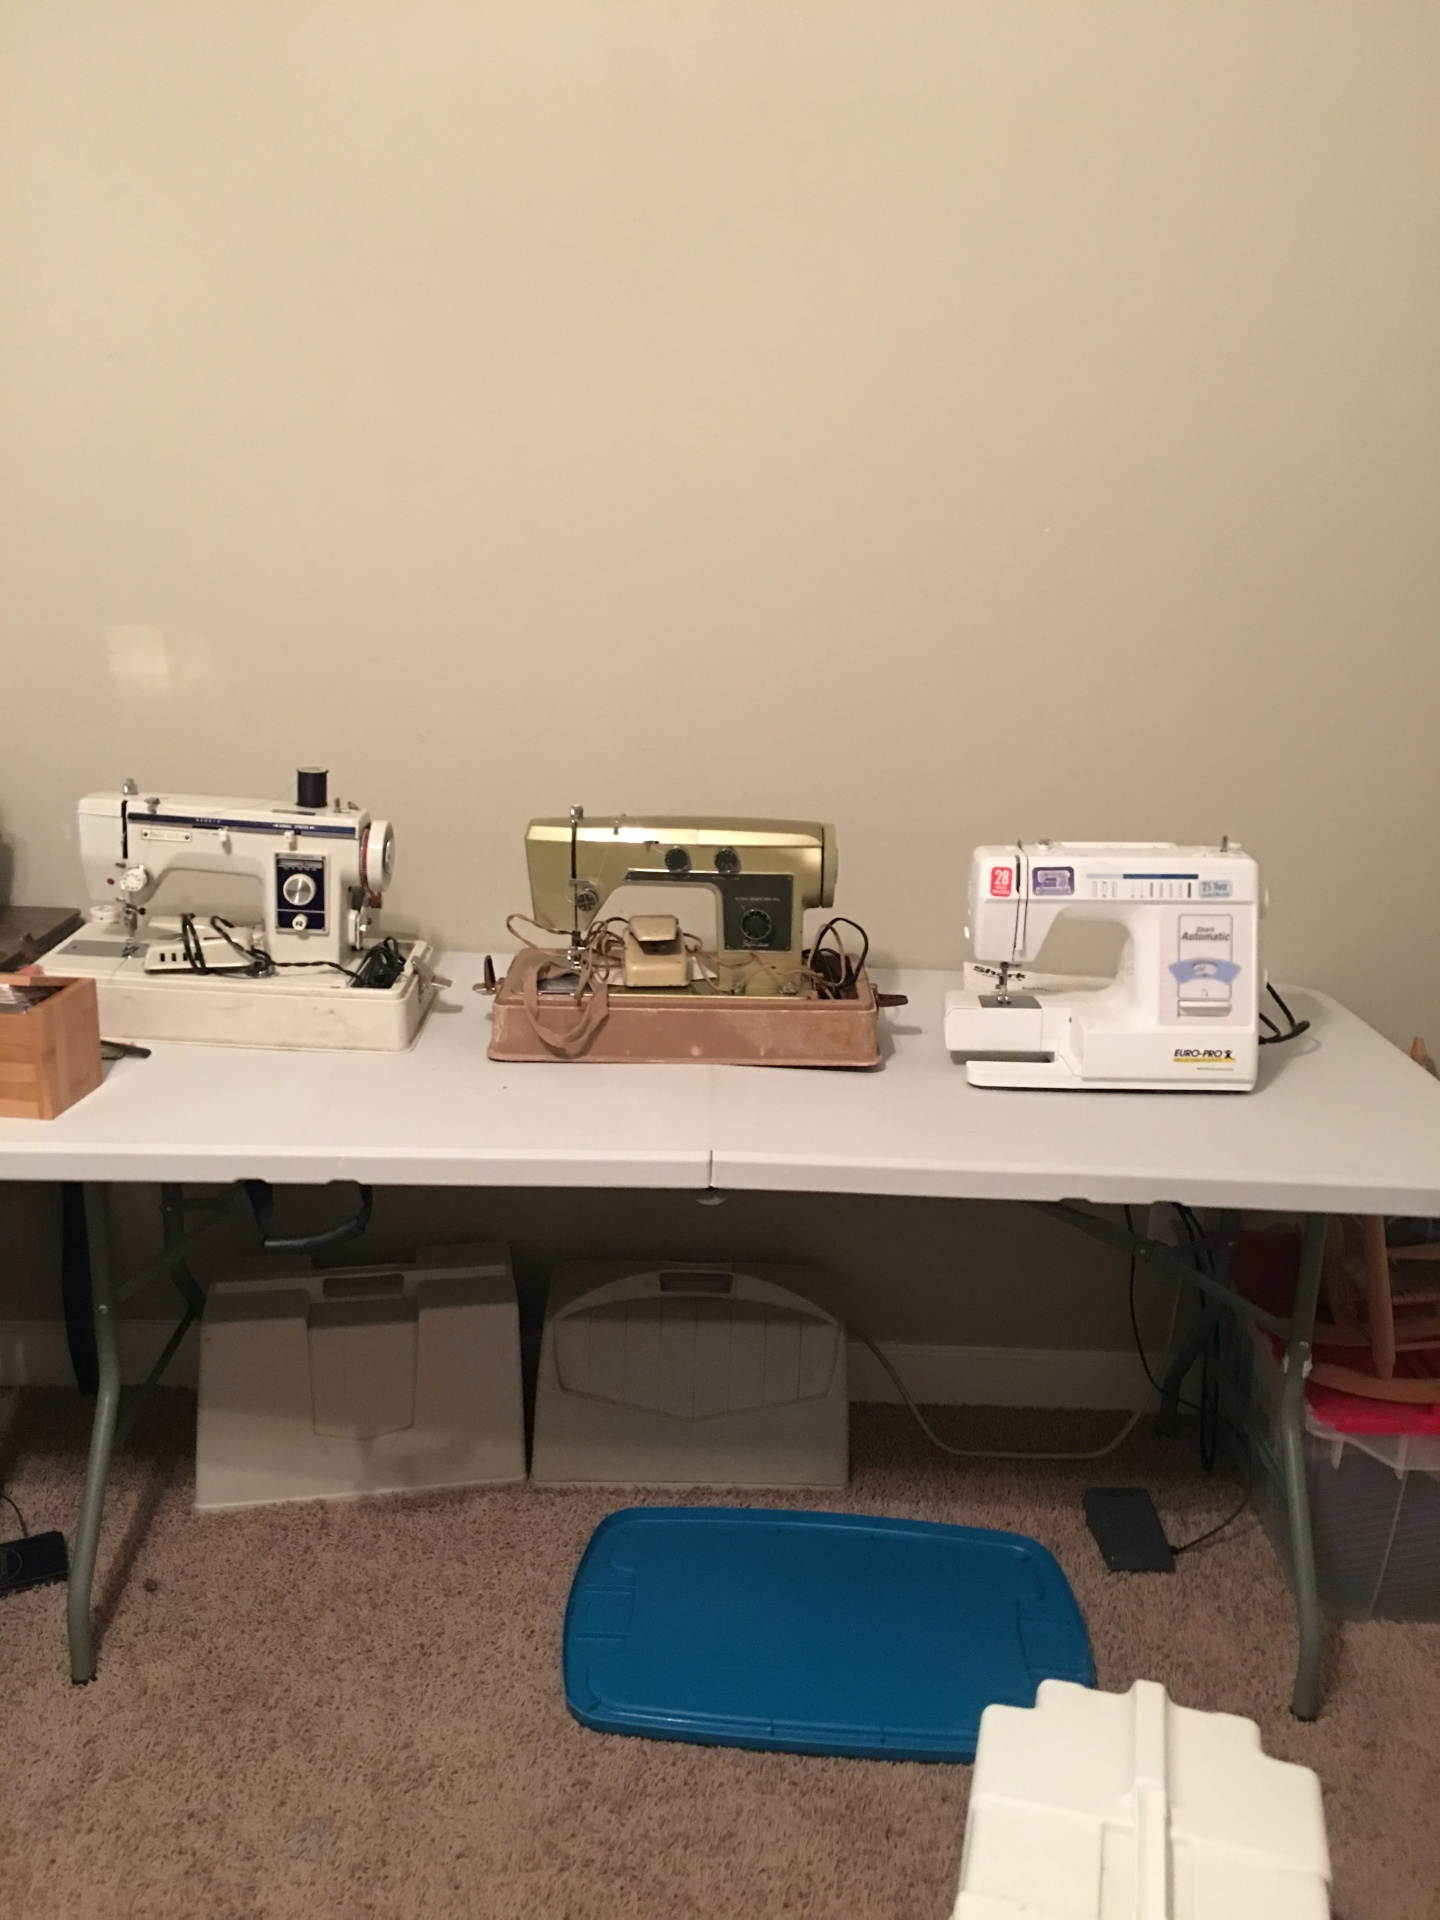 Sewing Machines That were donated